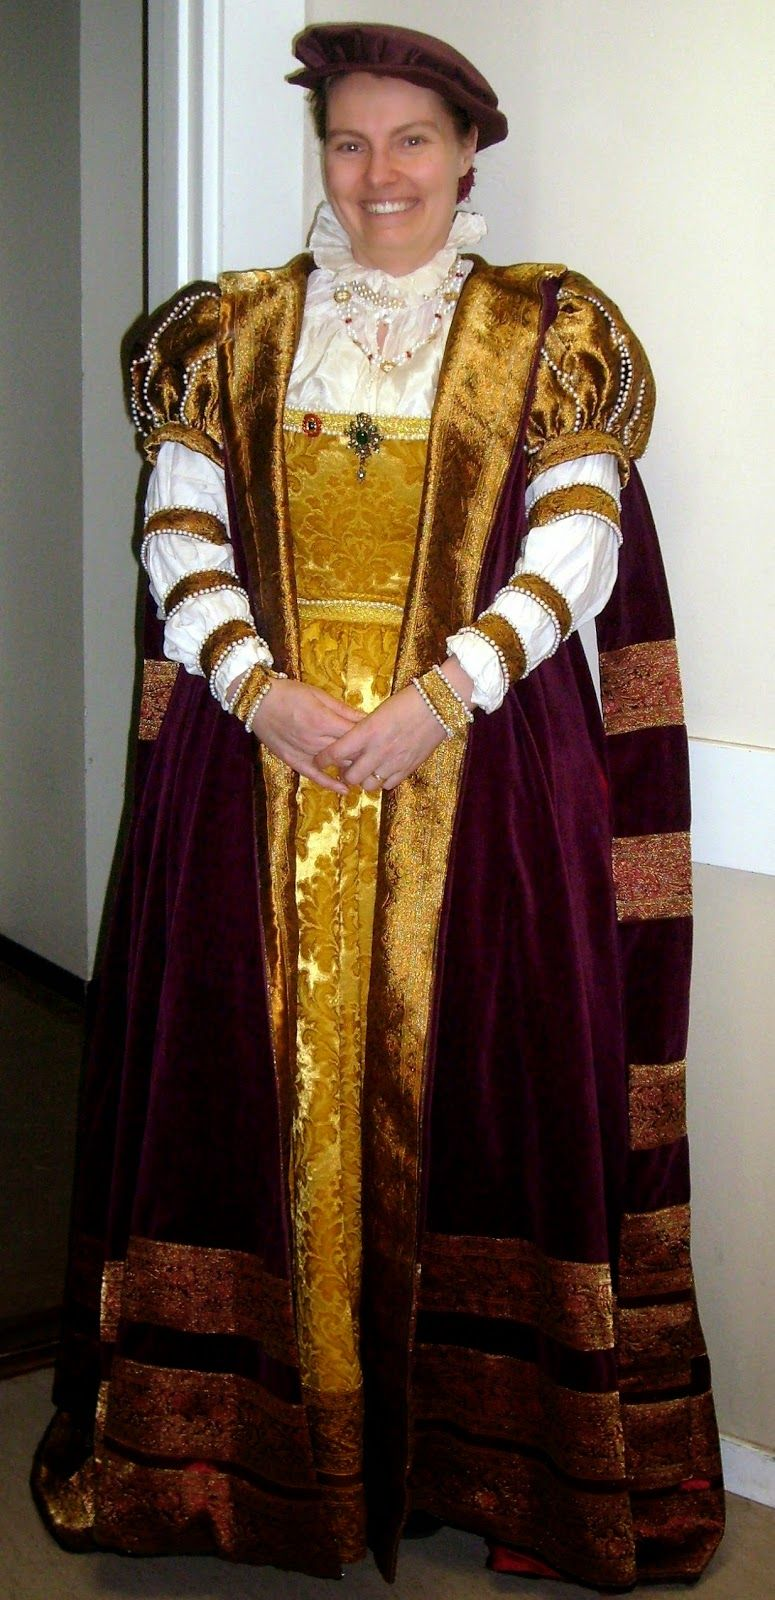 Evau0027s historical costuming blog A mid-16th century Swedish court gown  sc 1 st  Pinterest & Evau0027s historical costuming blog: A mid-16th century Swedish court ...